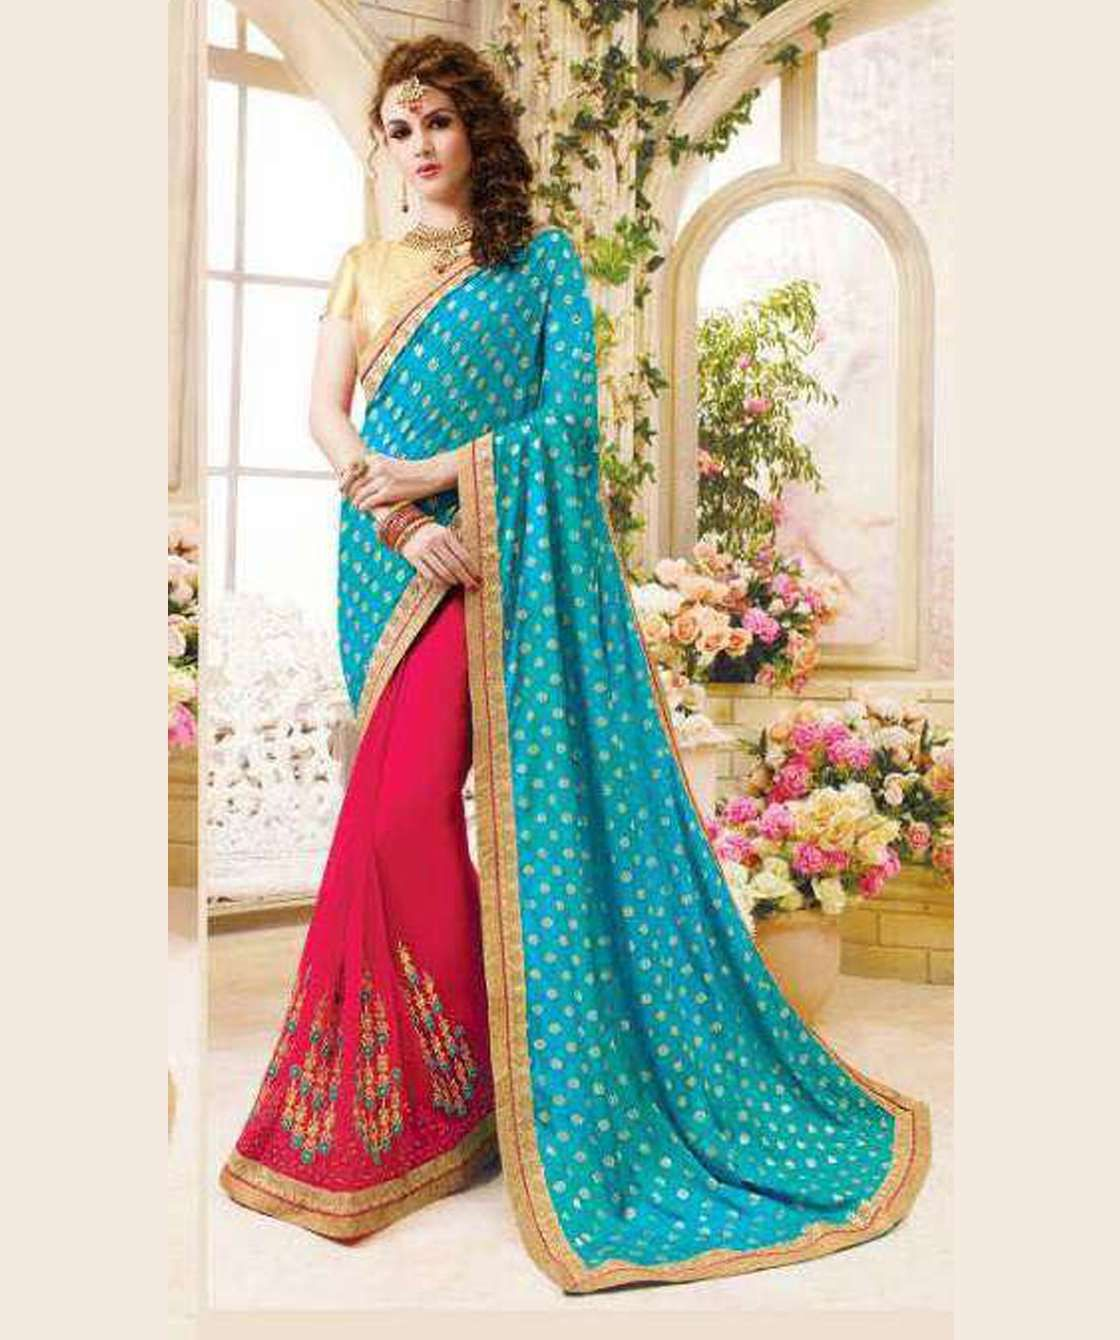 f31b754d59 Buy #designer #sarees #online at best affordable prices in India. Saree  Exotica is one stop destination for #shopping #ethnic #wears online.